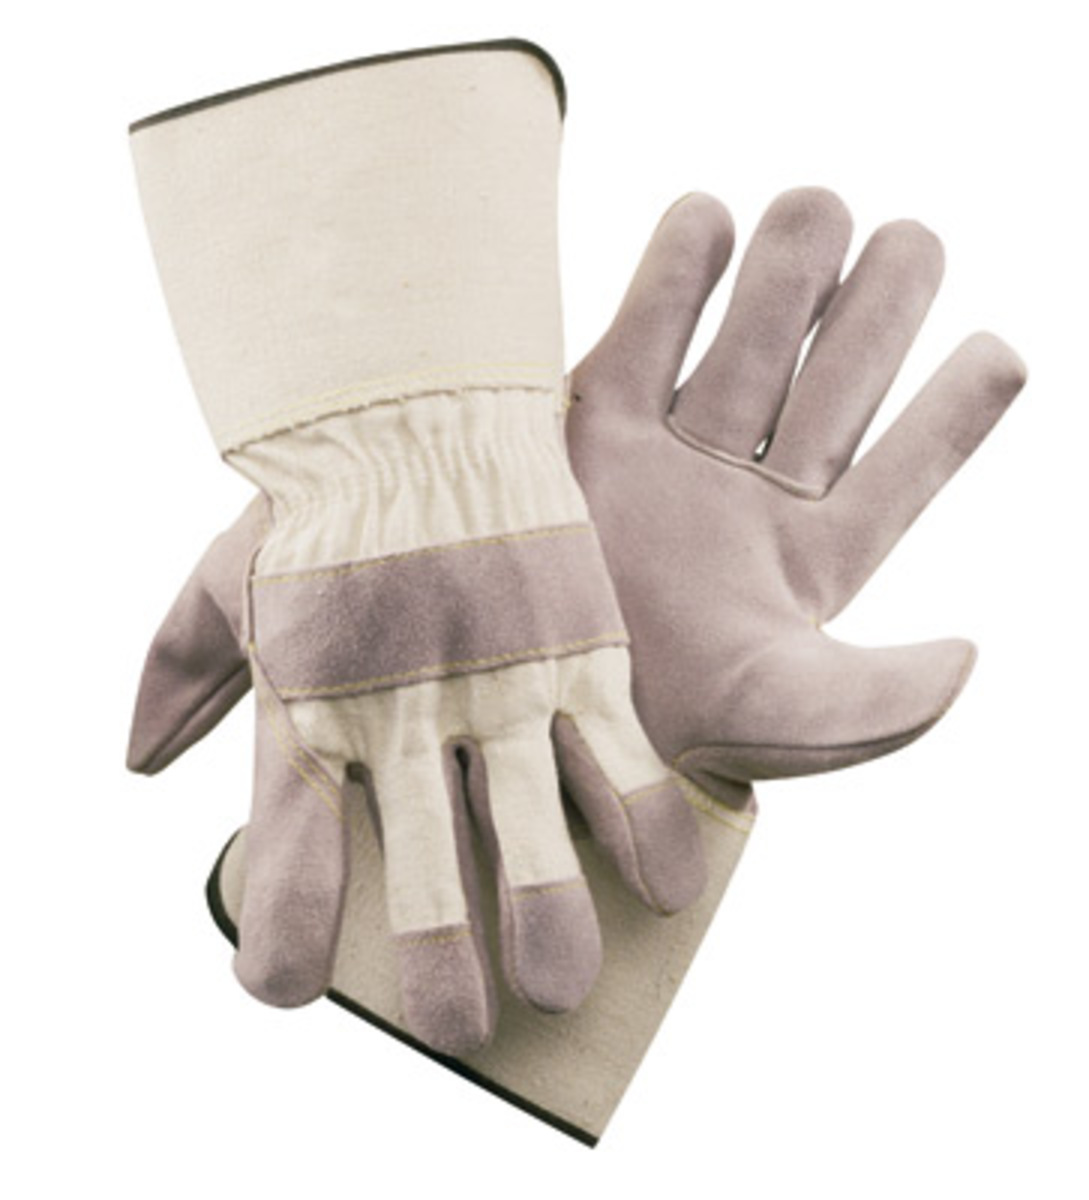 Gauntlet cuff leather work gloves - Radnor Large Side Split Leather Palm Gloves With Gauntlet Cuff Duck Canvas Back And